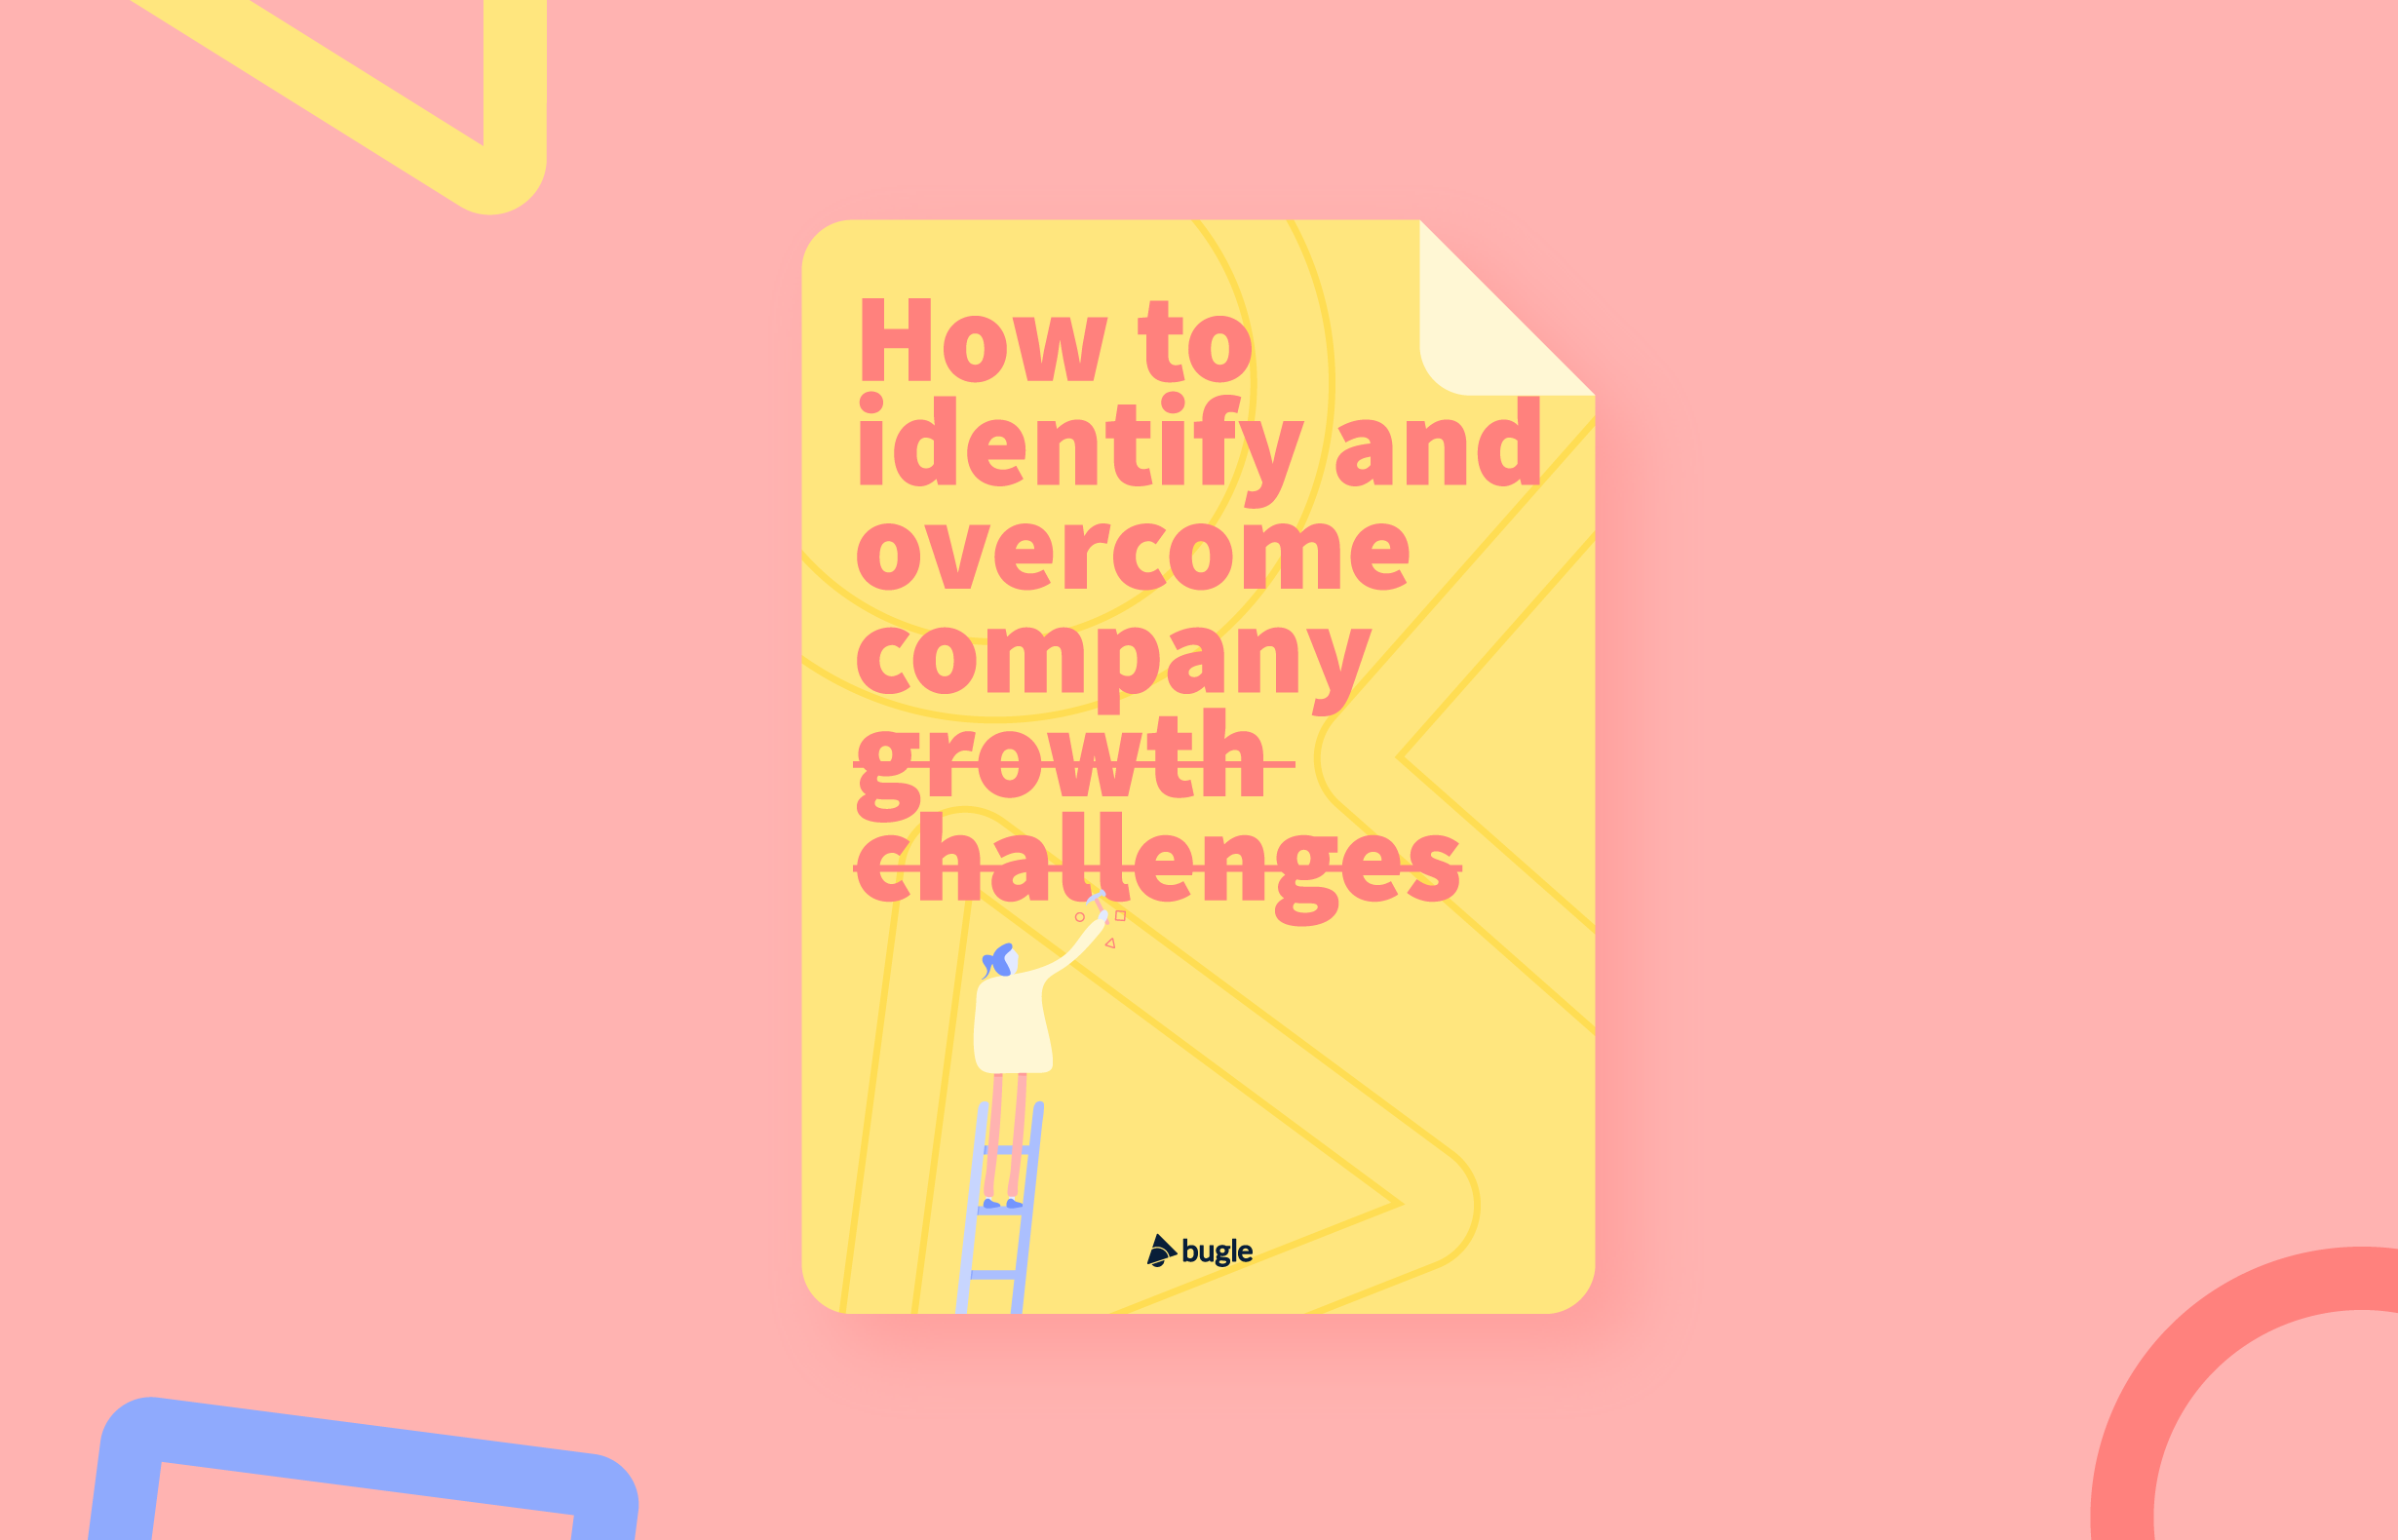 How to identify and overcome company growth challenges